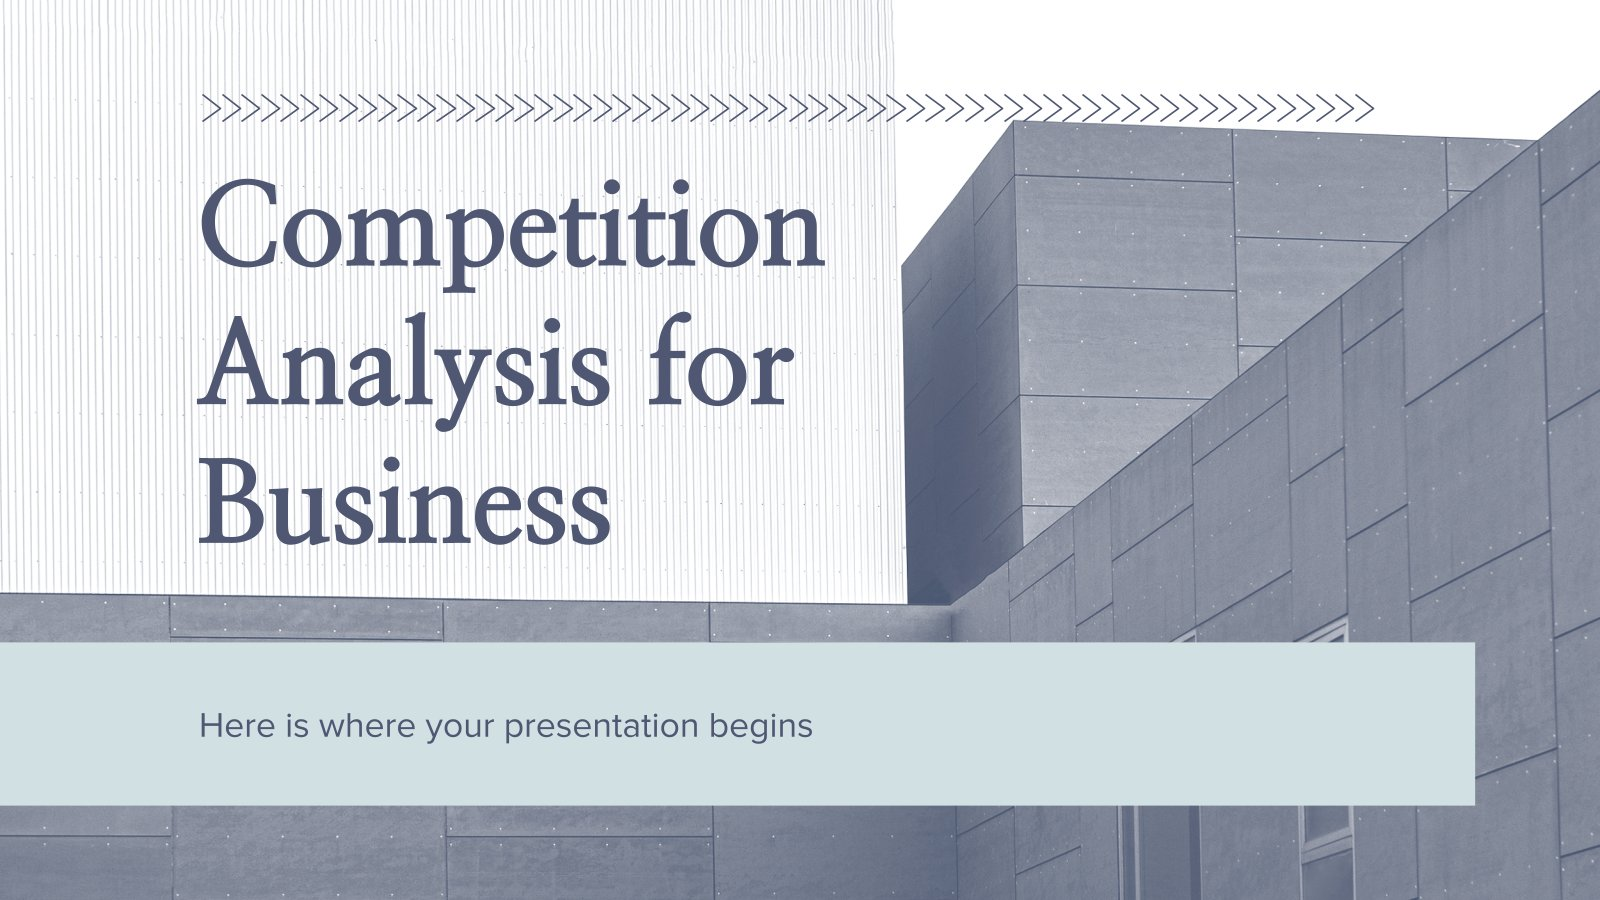 Competition Analysis for Business presentation template